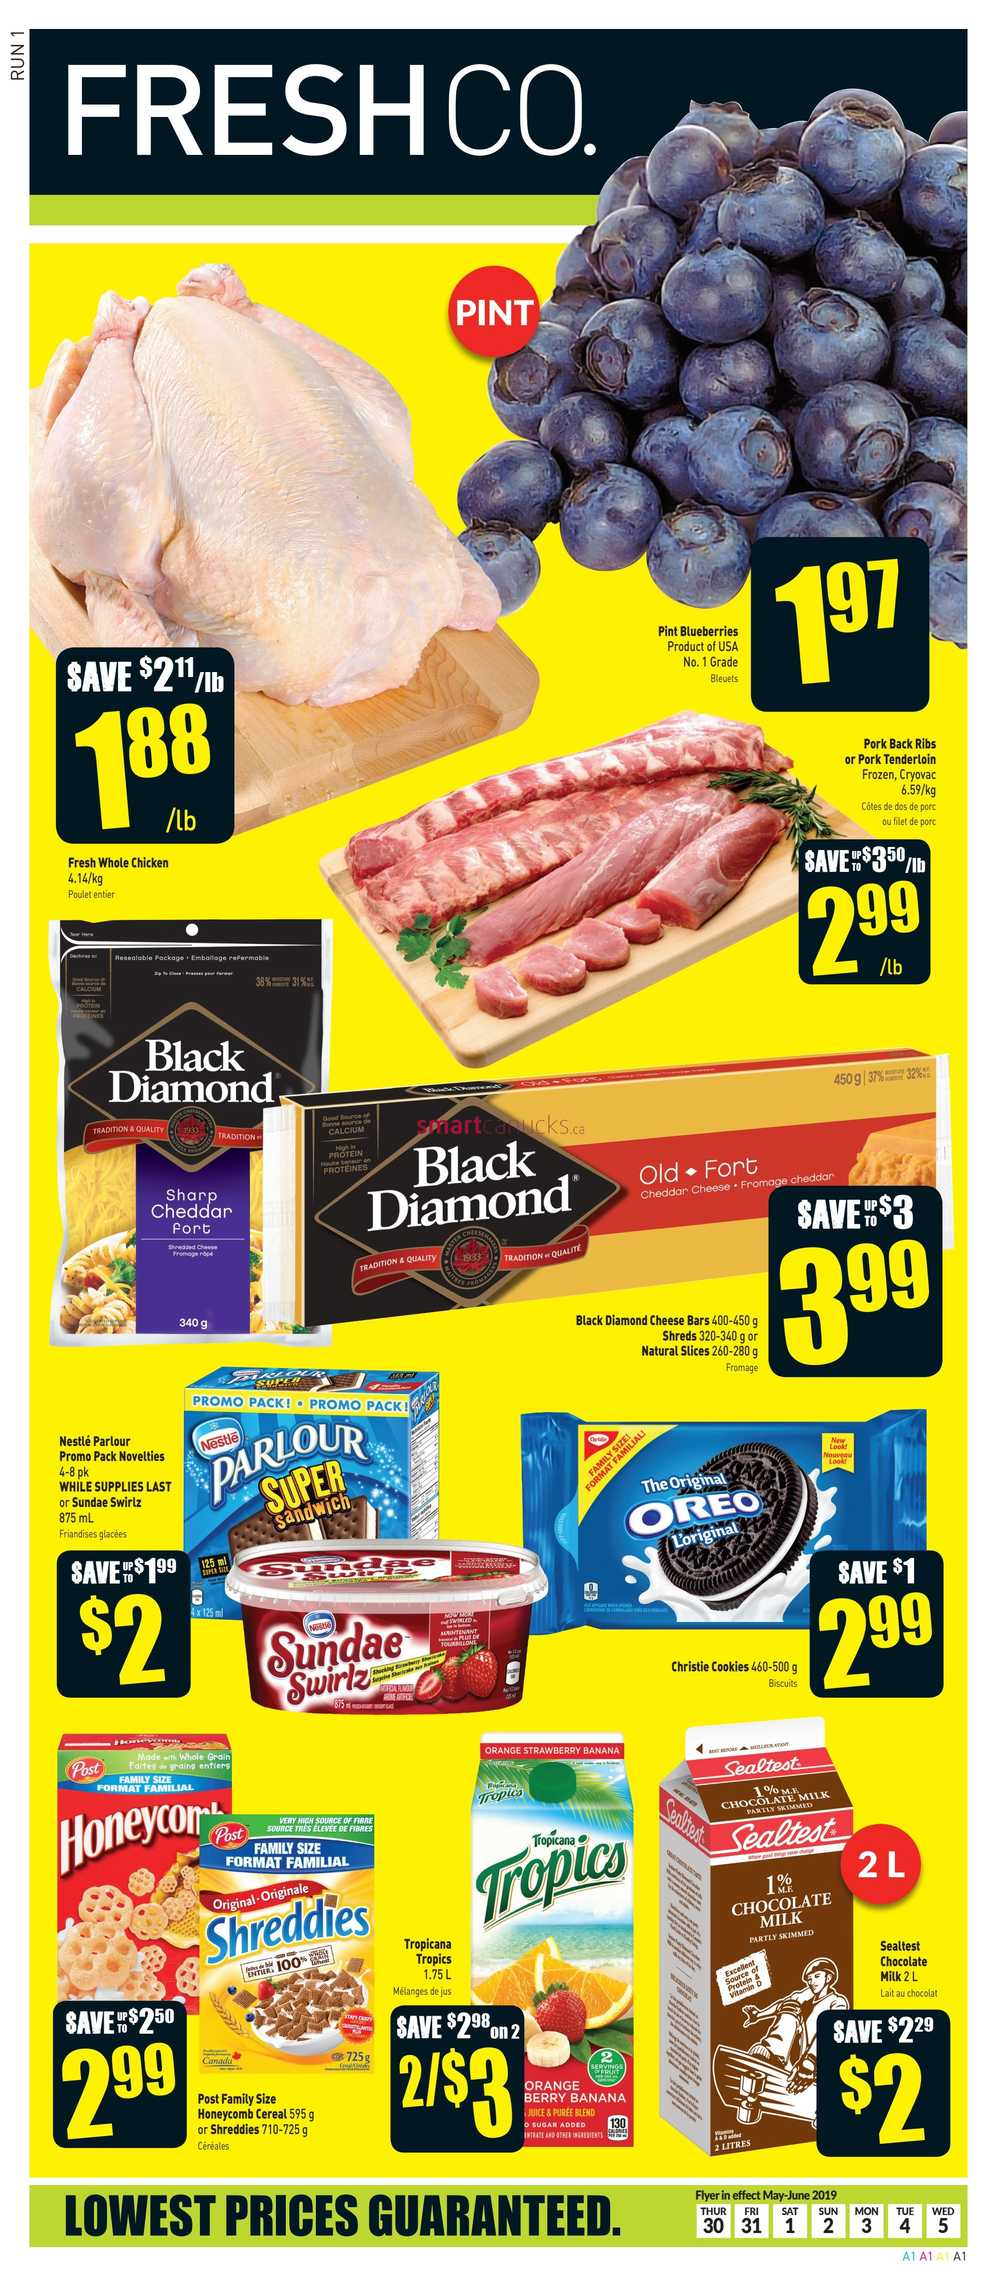 FreshCo Flyer May 30 to June 5